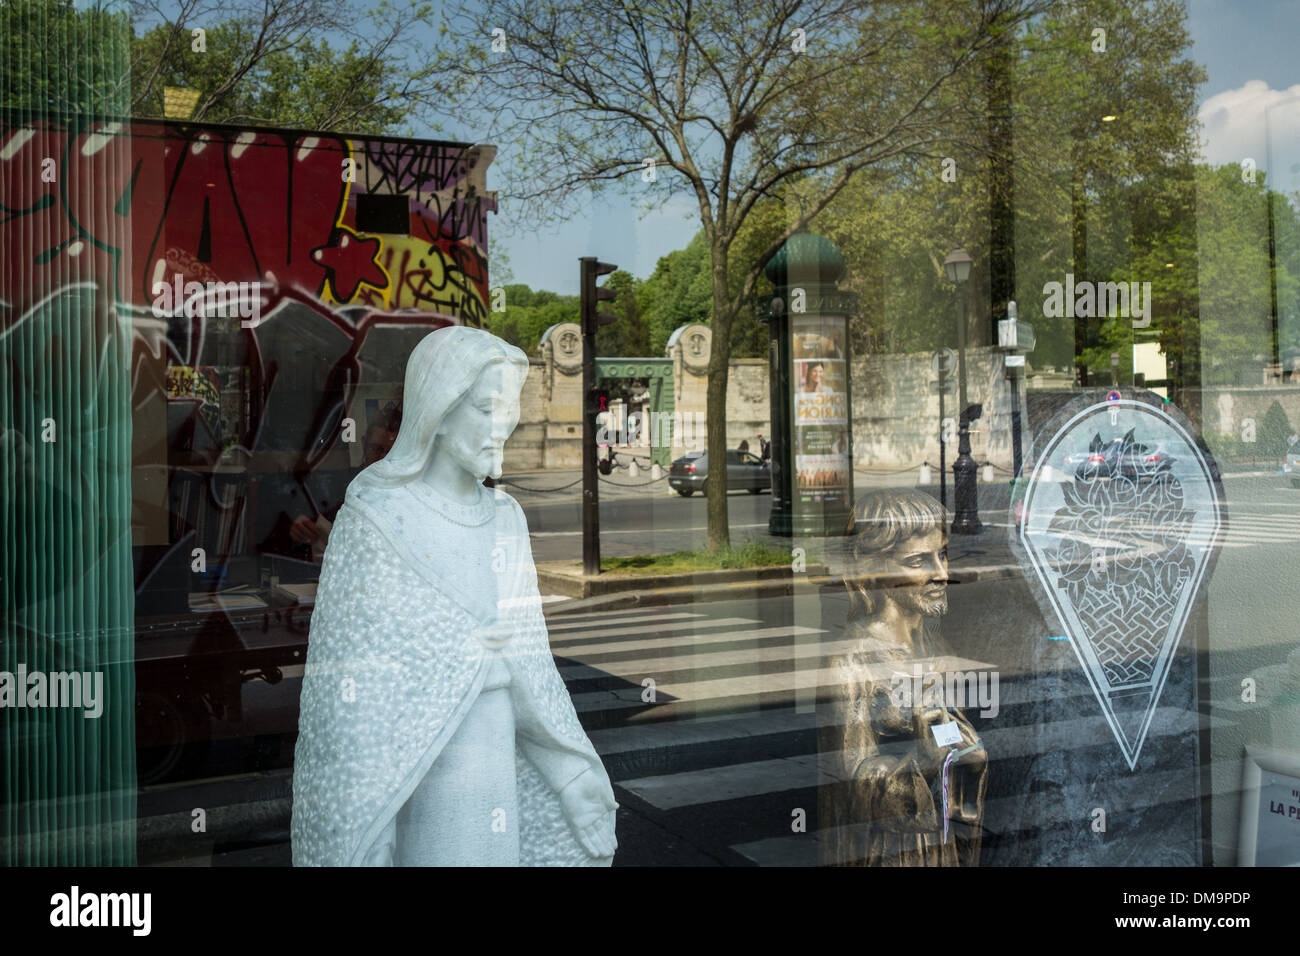 FUNERARY SHOP IN FRONT OF THE MAIN ENTRANCE TO PERE-LACHAISE CEMETERY, PARIS 20TH ARRONDISSEMENT, FRANCE - Stock Image